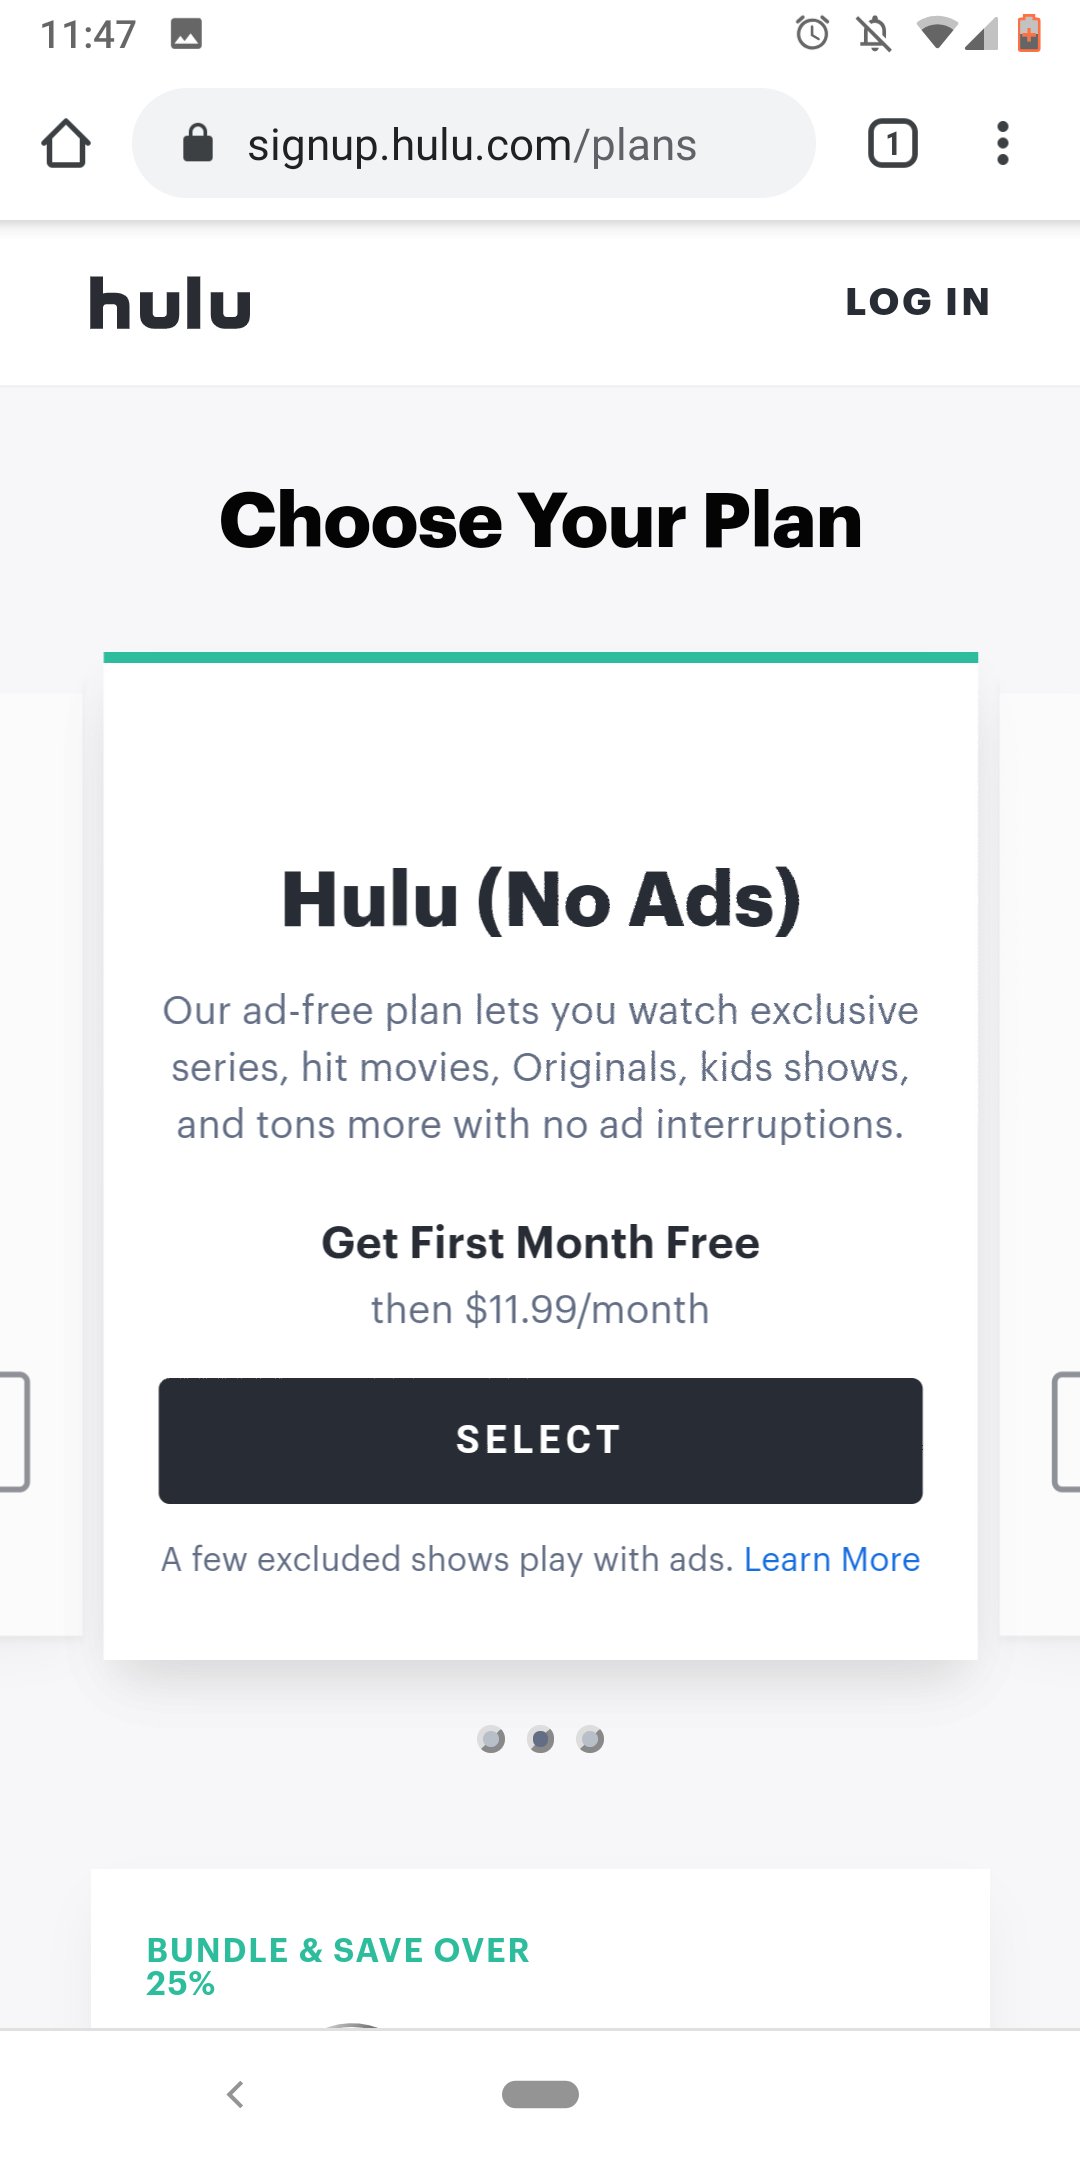 Does Hulu Take Prepaid Cards?